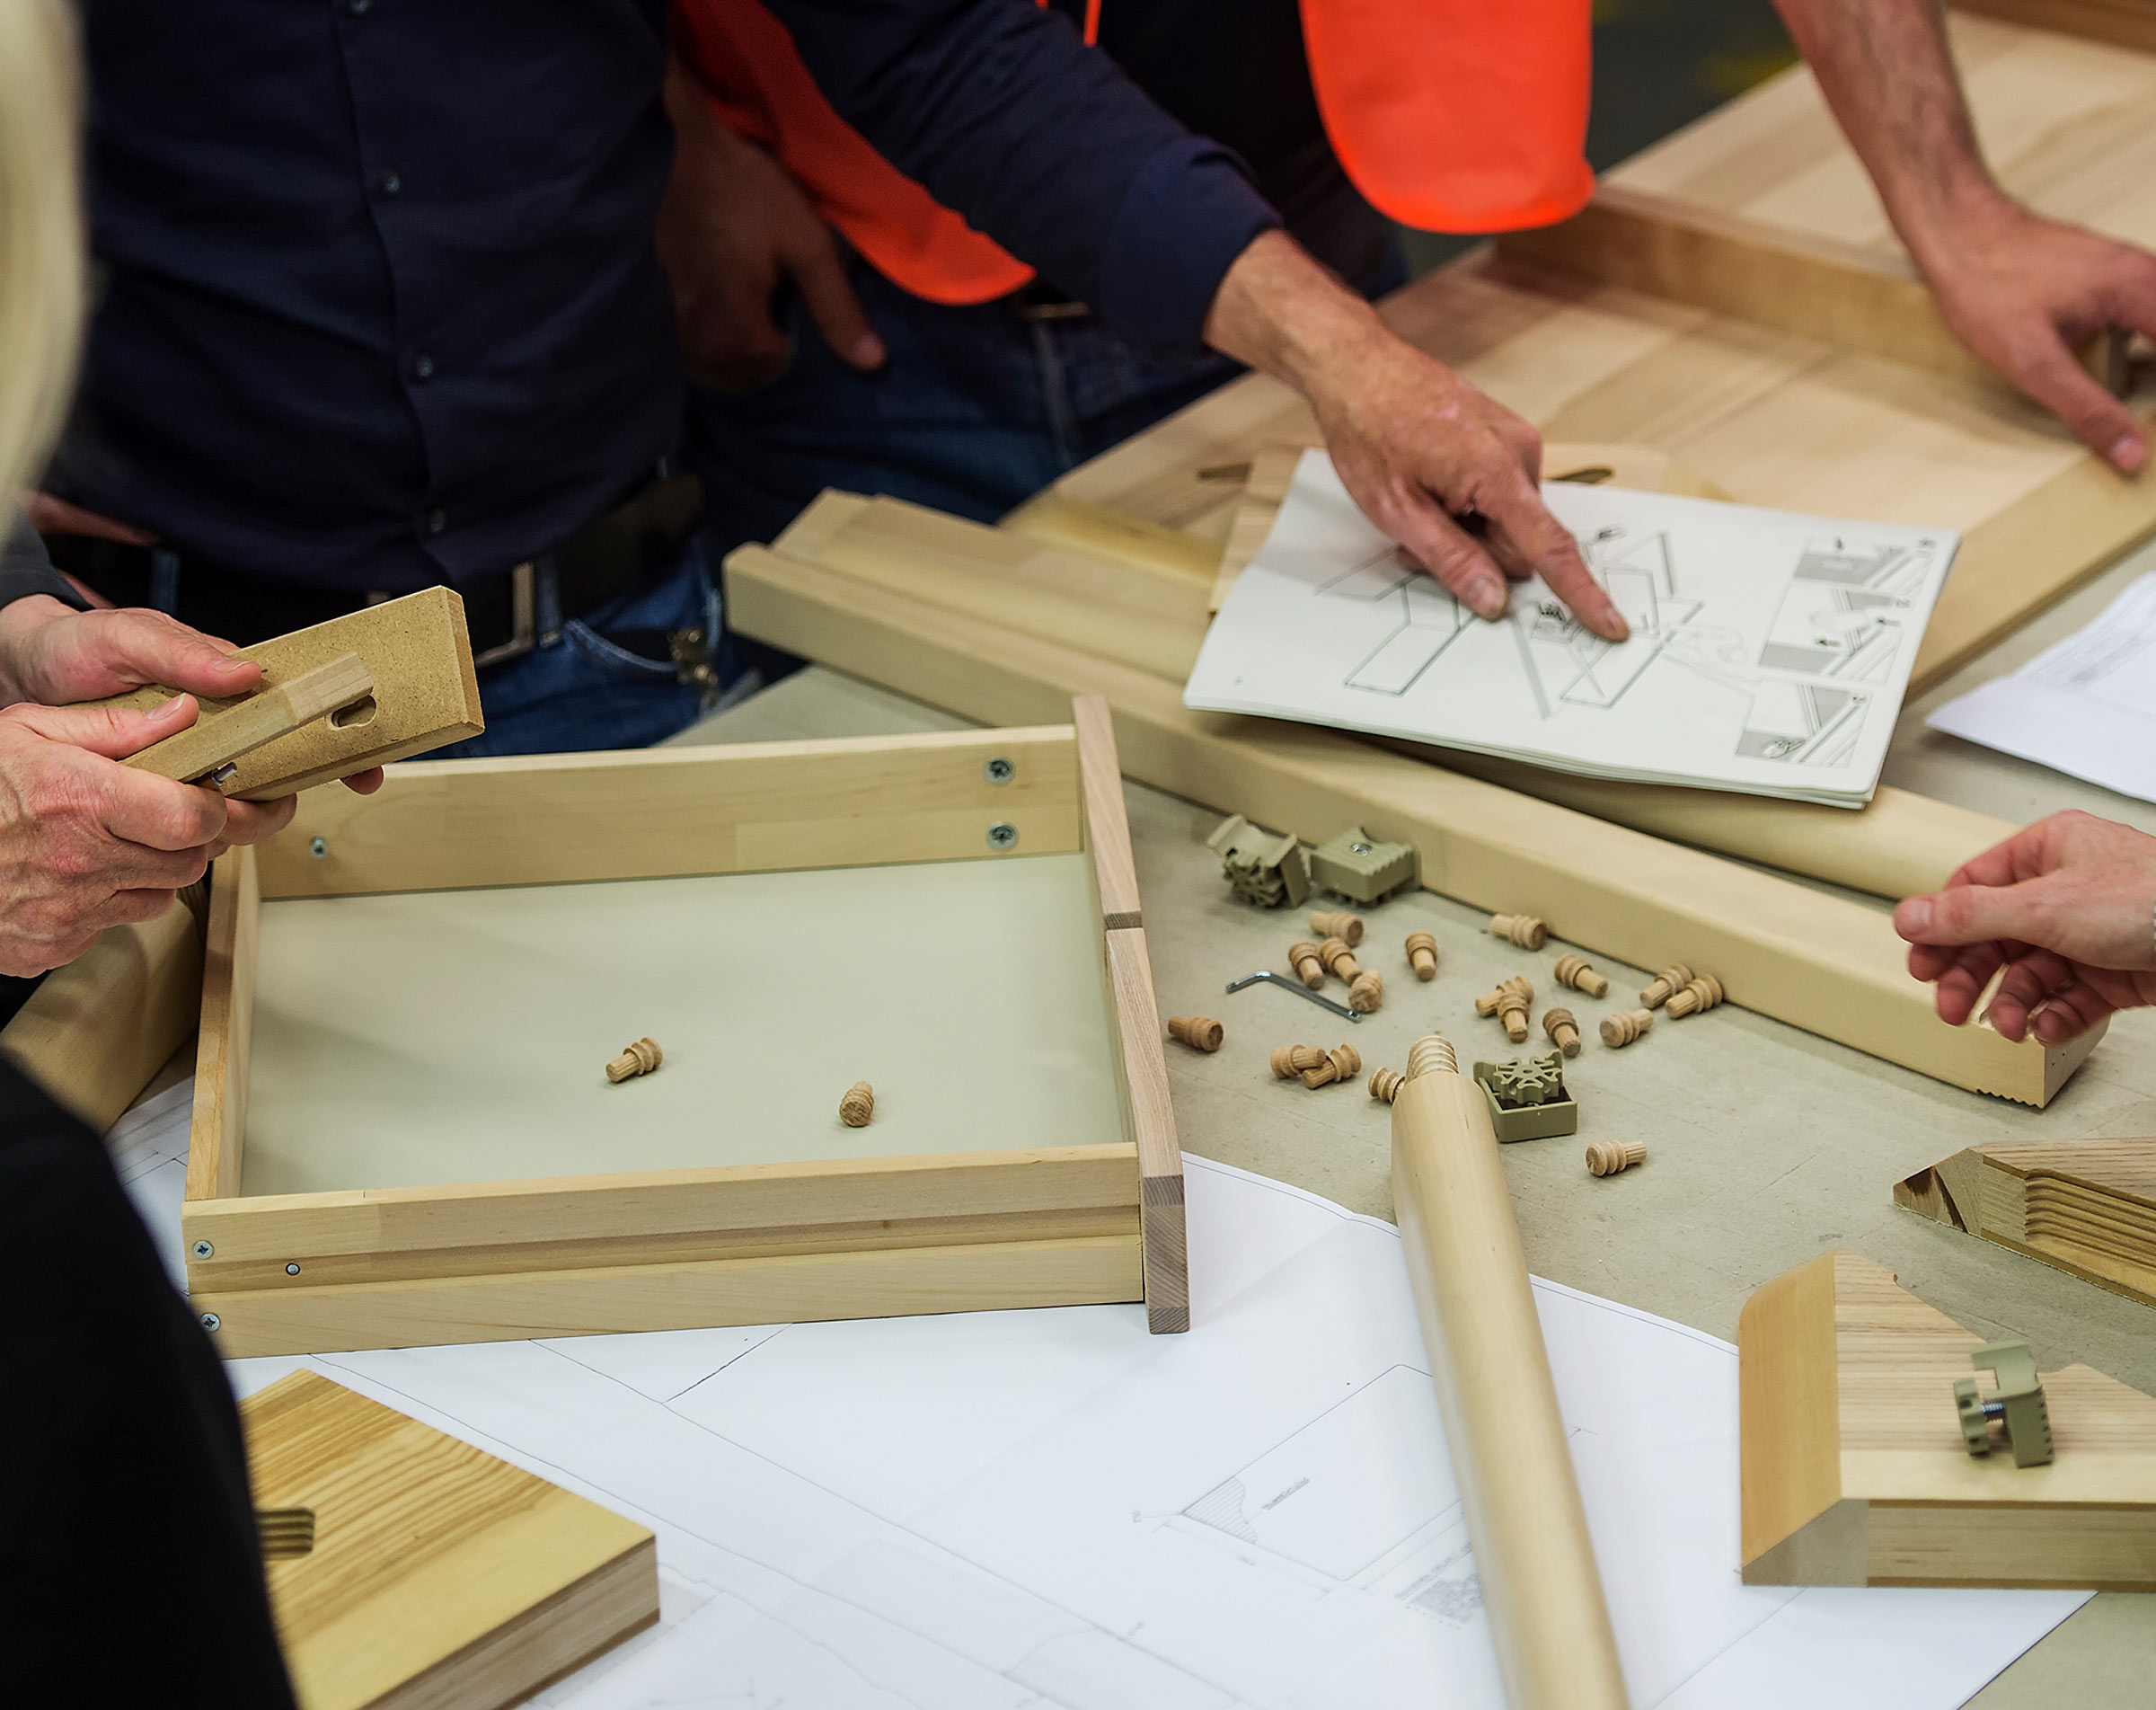 Four people are putting together a piece of IKEA furniture in pale wood using wedge dowels to slot the parts together.